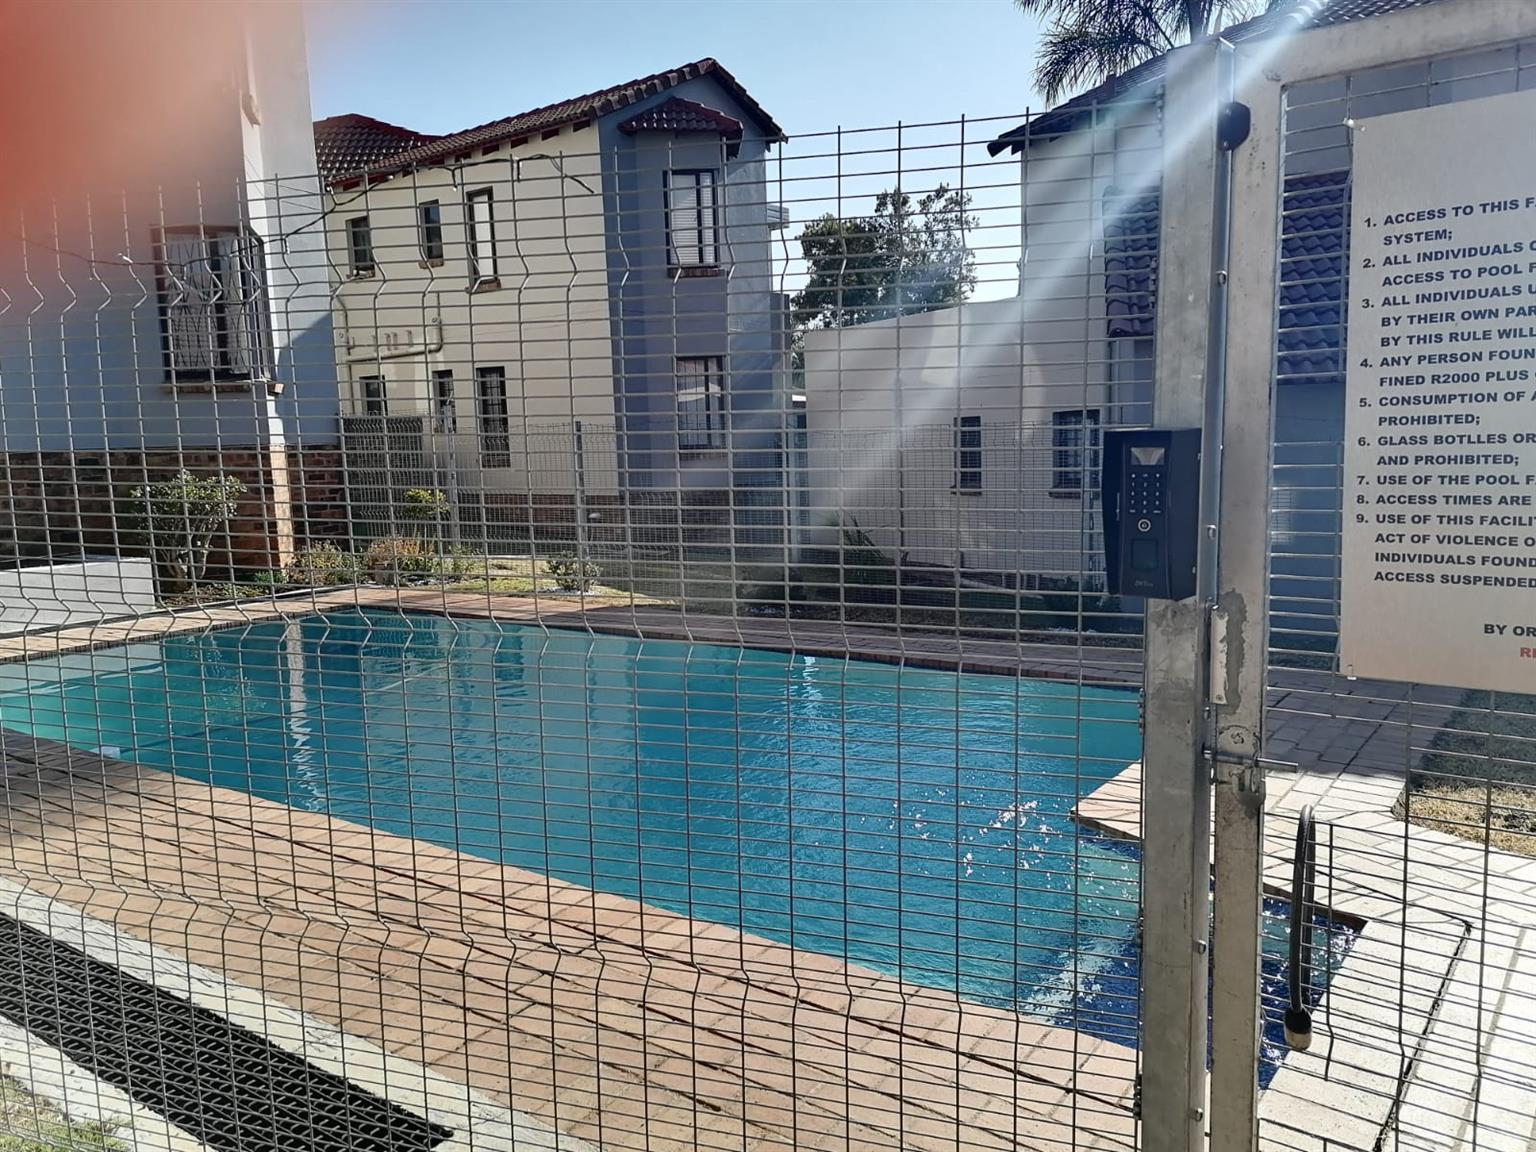 NEWLY RENOVATED 3 BEDROOM FAMILY HOME FOR SALE IN JOHANNESBURG - SB2417